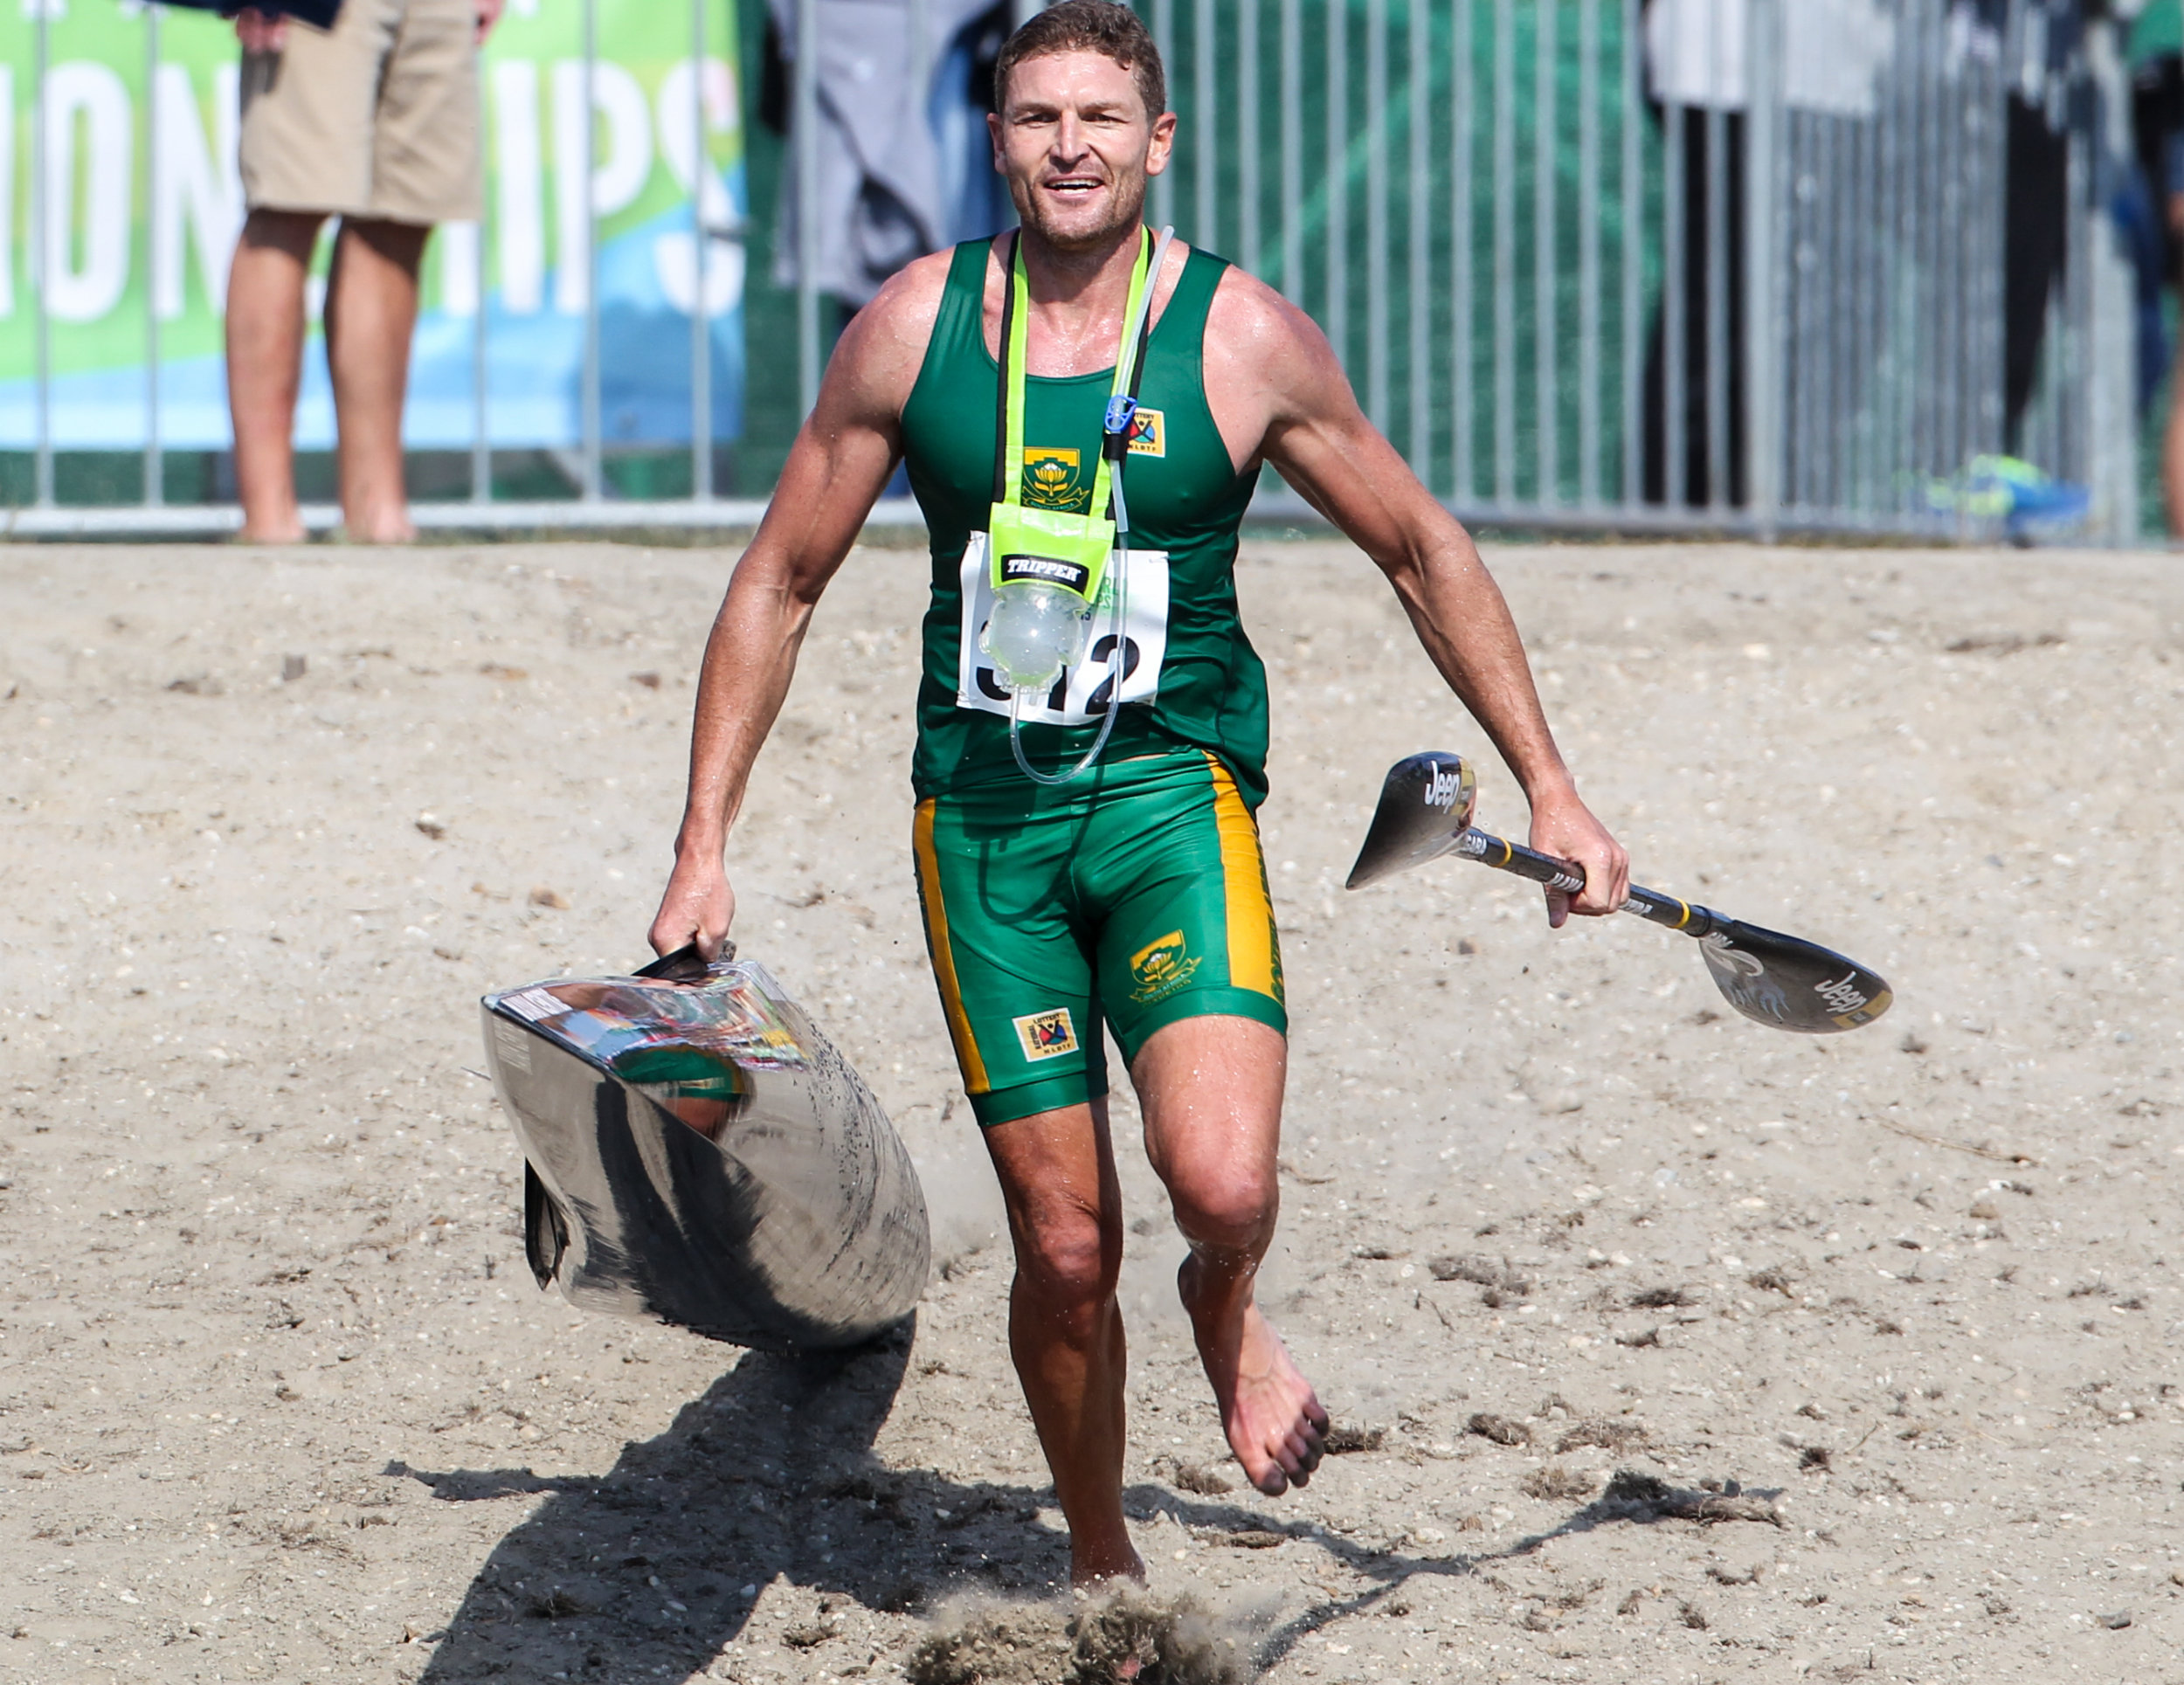 Current Marathon World Champion, Hank McGregor (Euro Steel/Kayak Centre) hopes to secure a top two finish at the 2016 South African Marathon Championships sponsored by Prescient at Zandvlei, Cape Town this Saturday in a bid to qualify for this year's World Champs and a shot at defending his global crown. Balint Vekassy/ Gameplan Media